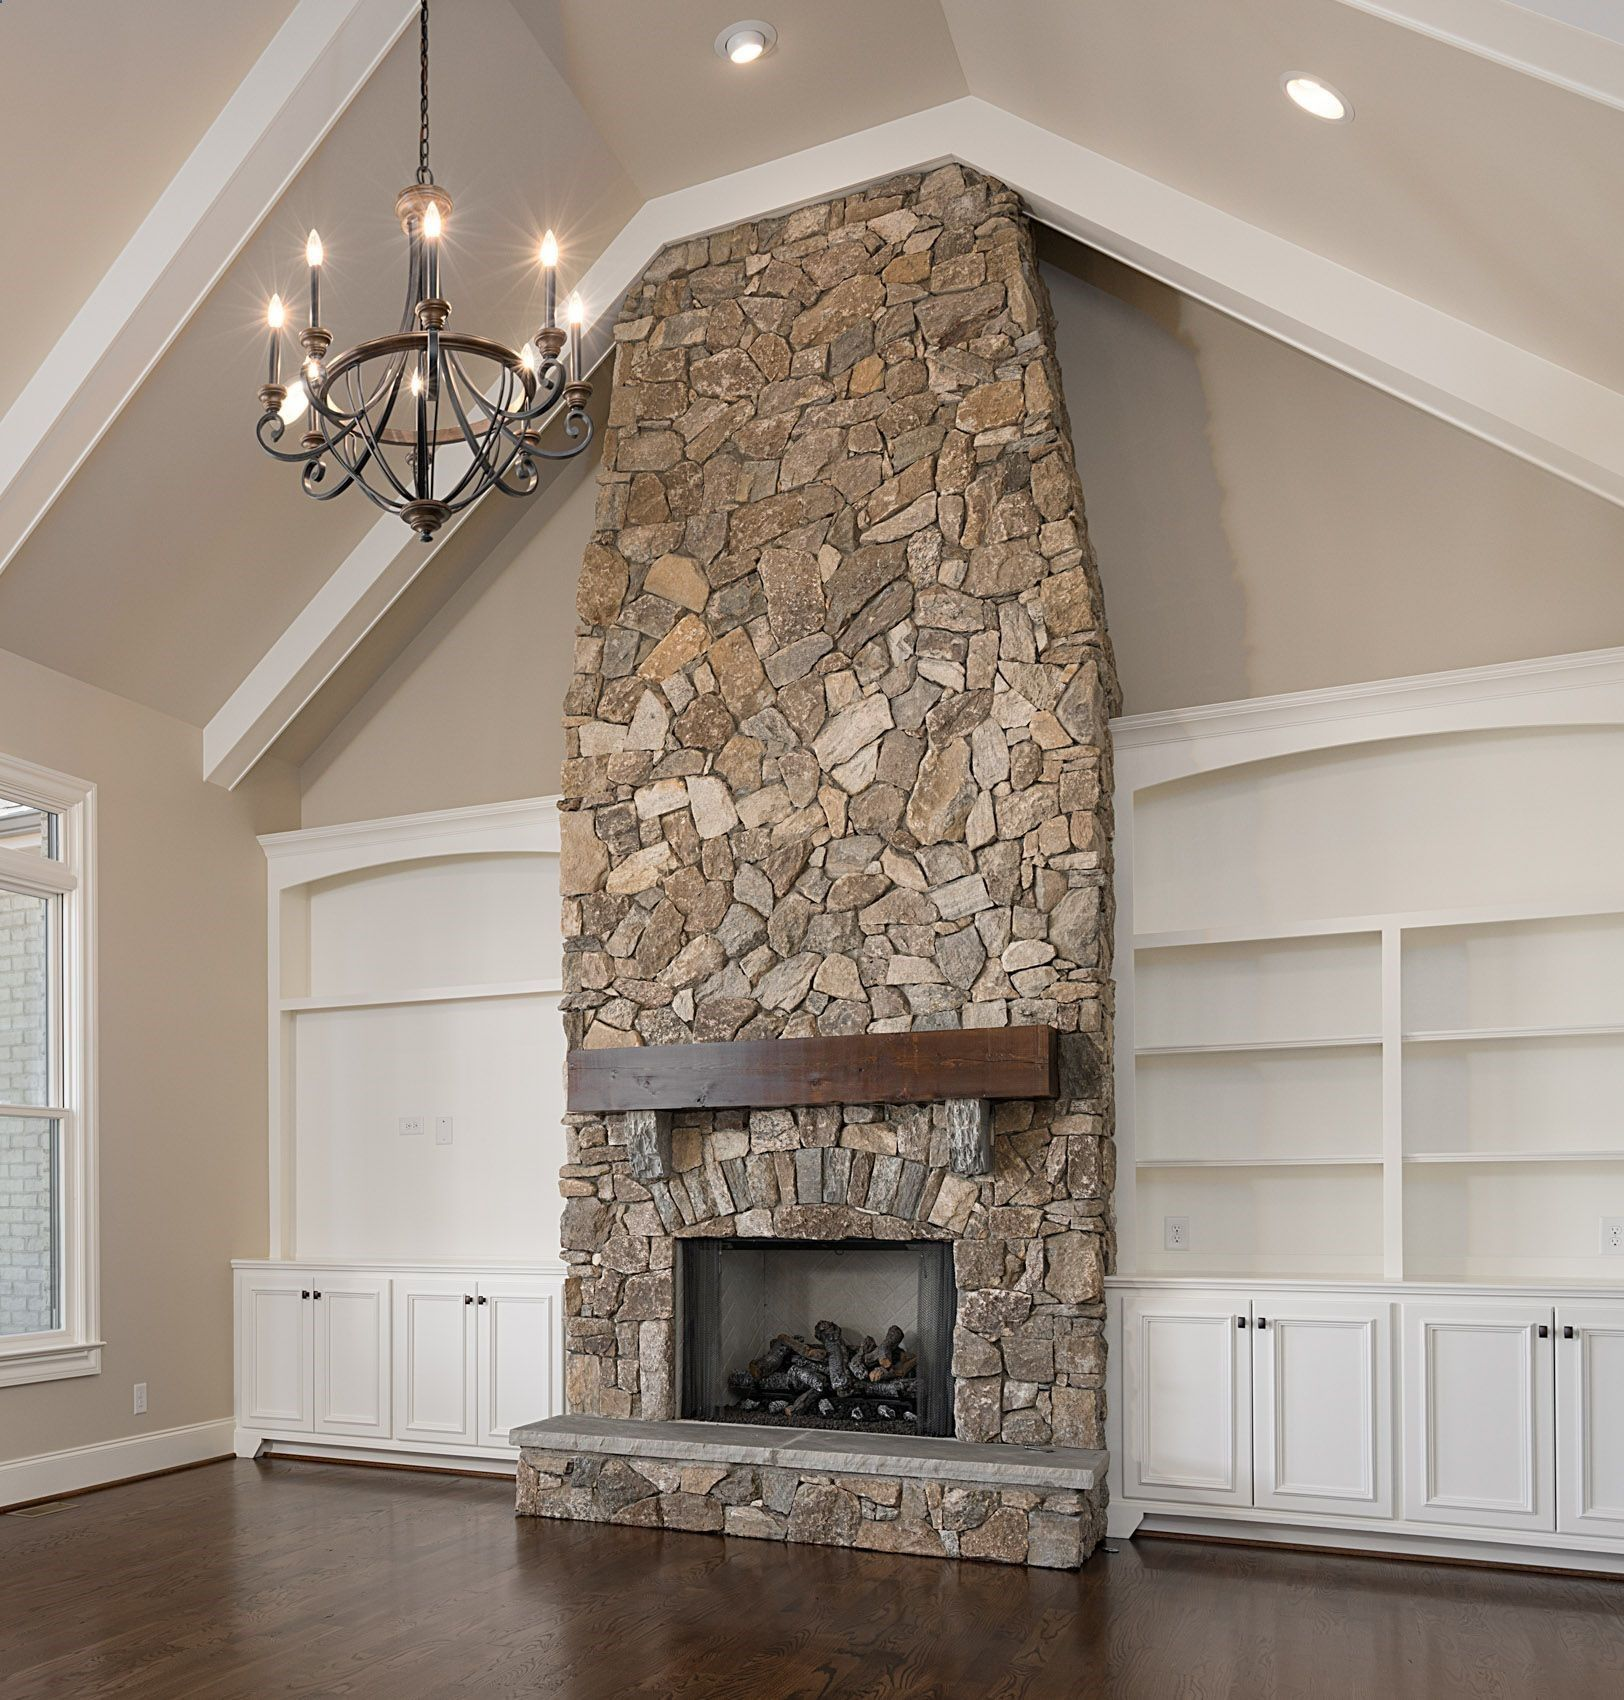 The Perfect Living Room Vaulted Ceilings And An Iron Chandelier